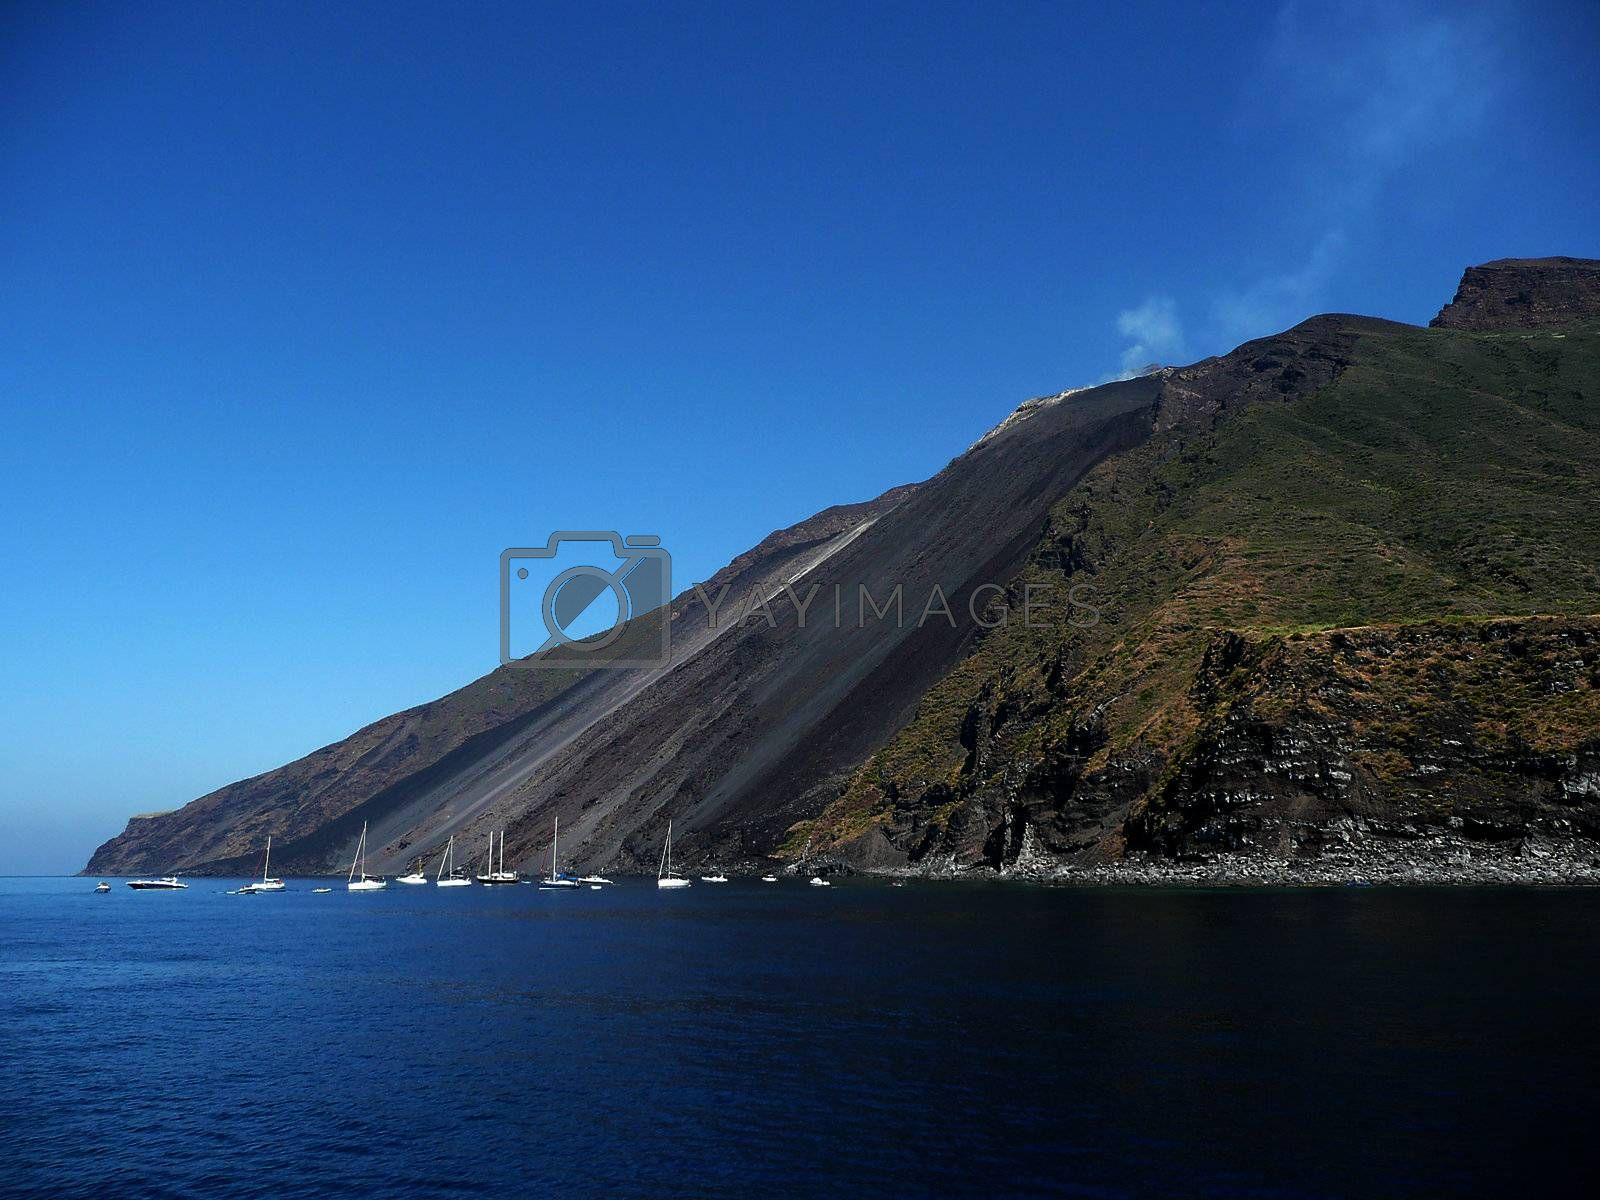 Stromboli, active volcano which is part of the Aeolian Islands Archipelago